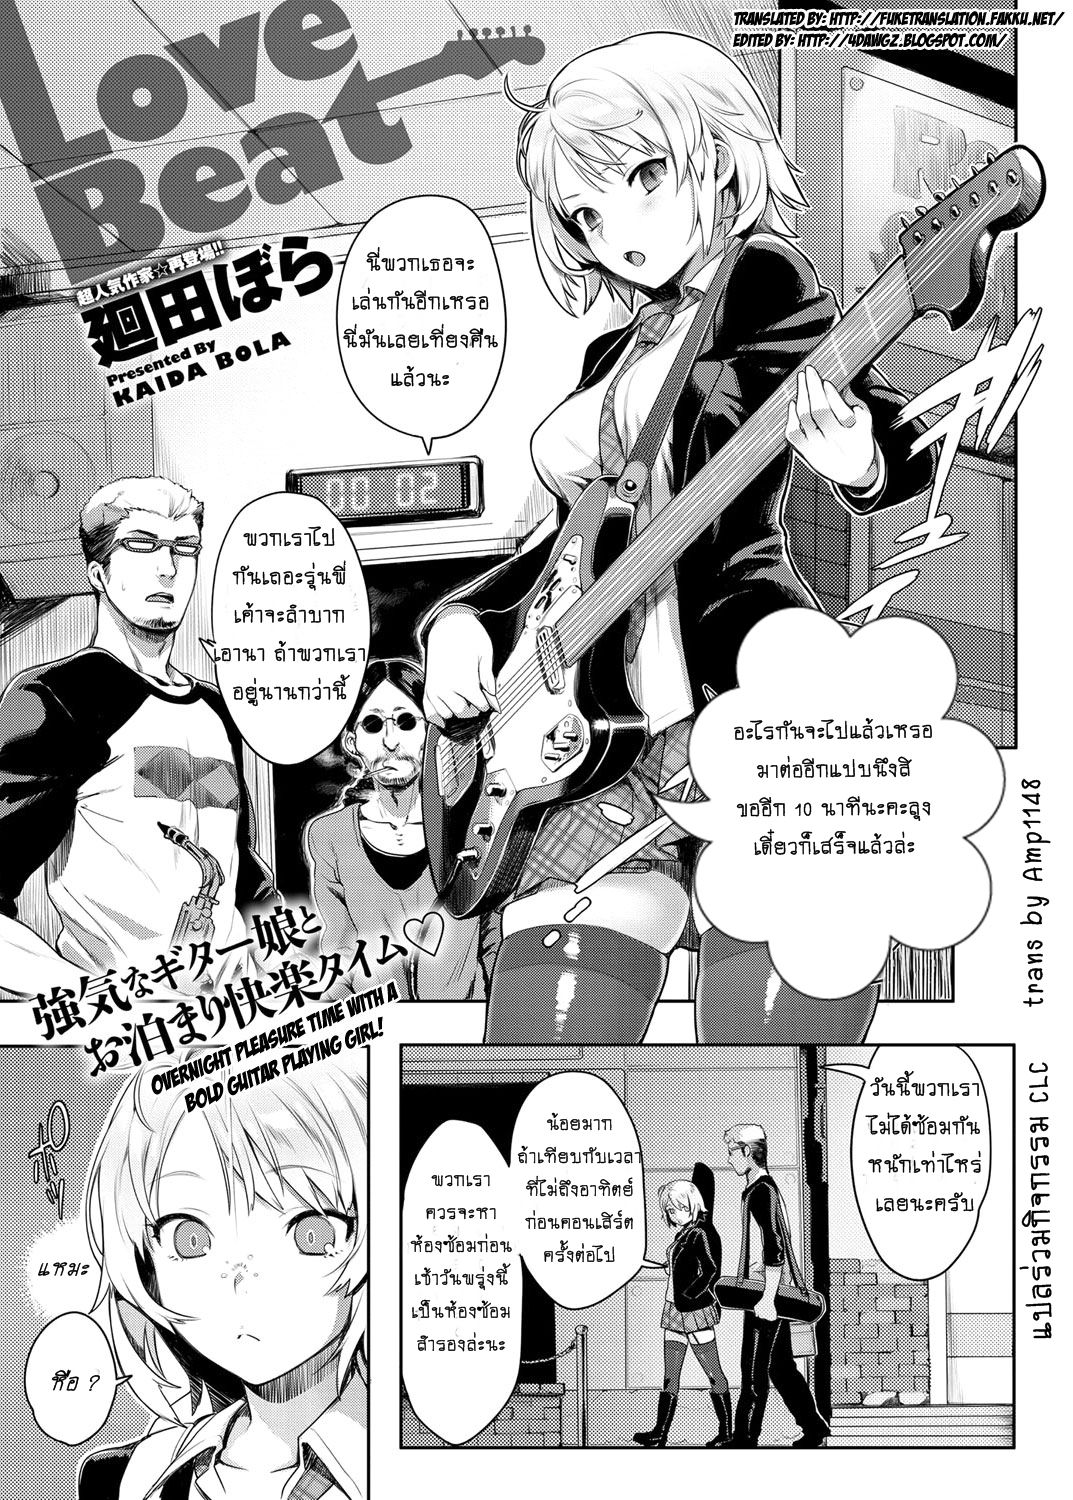 [Kaida Bora] Love Beat (Canopri Comic 2012-03) [Thai ภาษาไทย] [Amp1148]